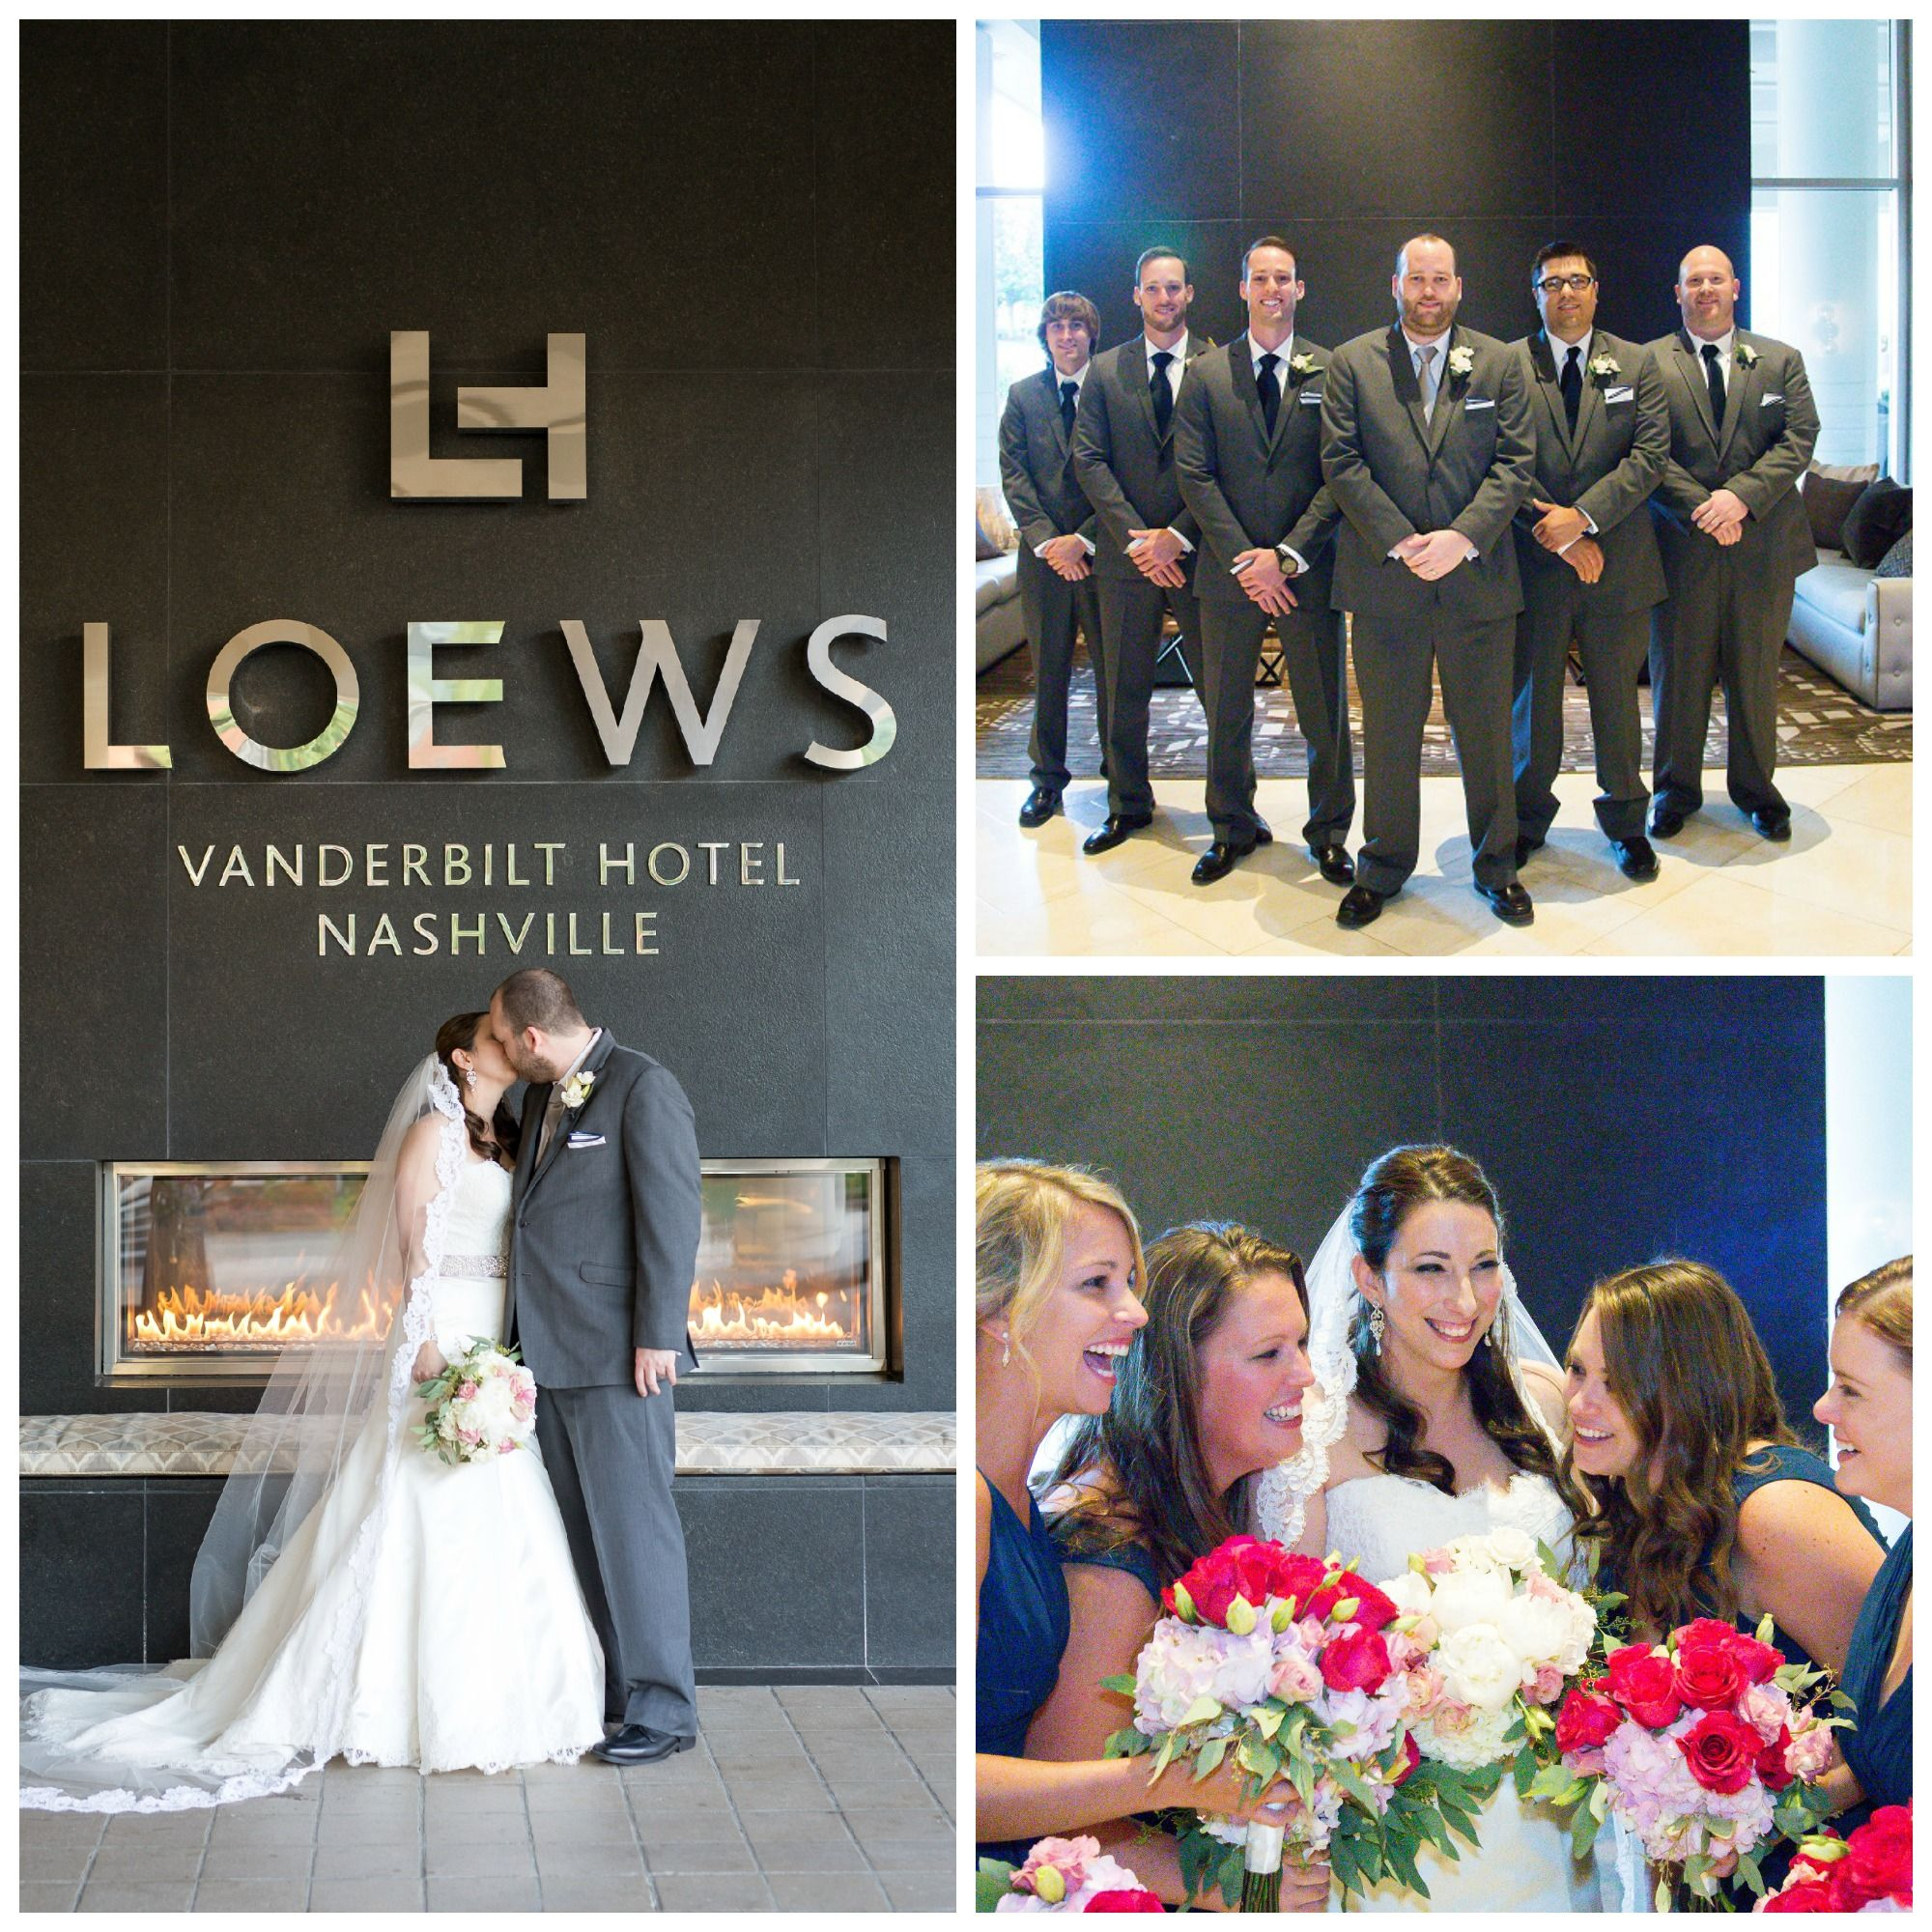 We love the color scheme from this wedding the grey suits